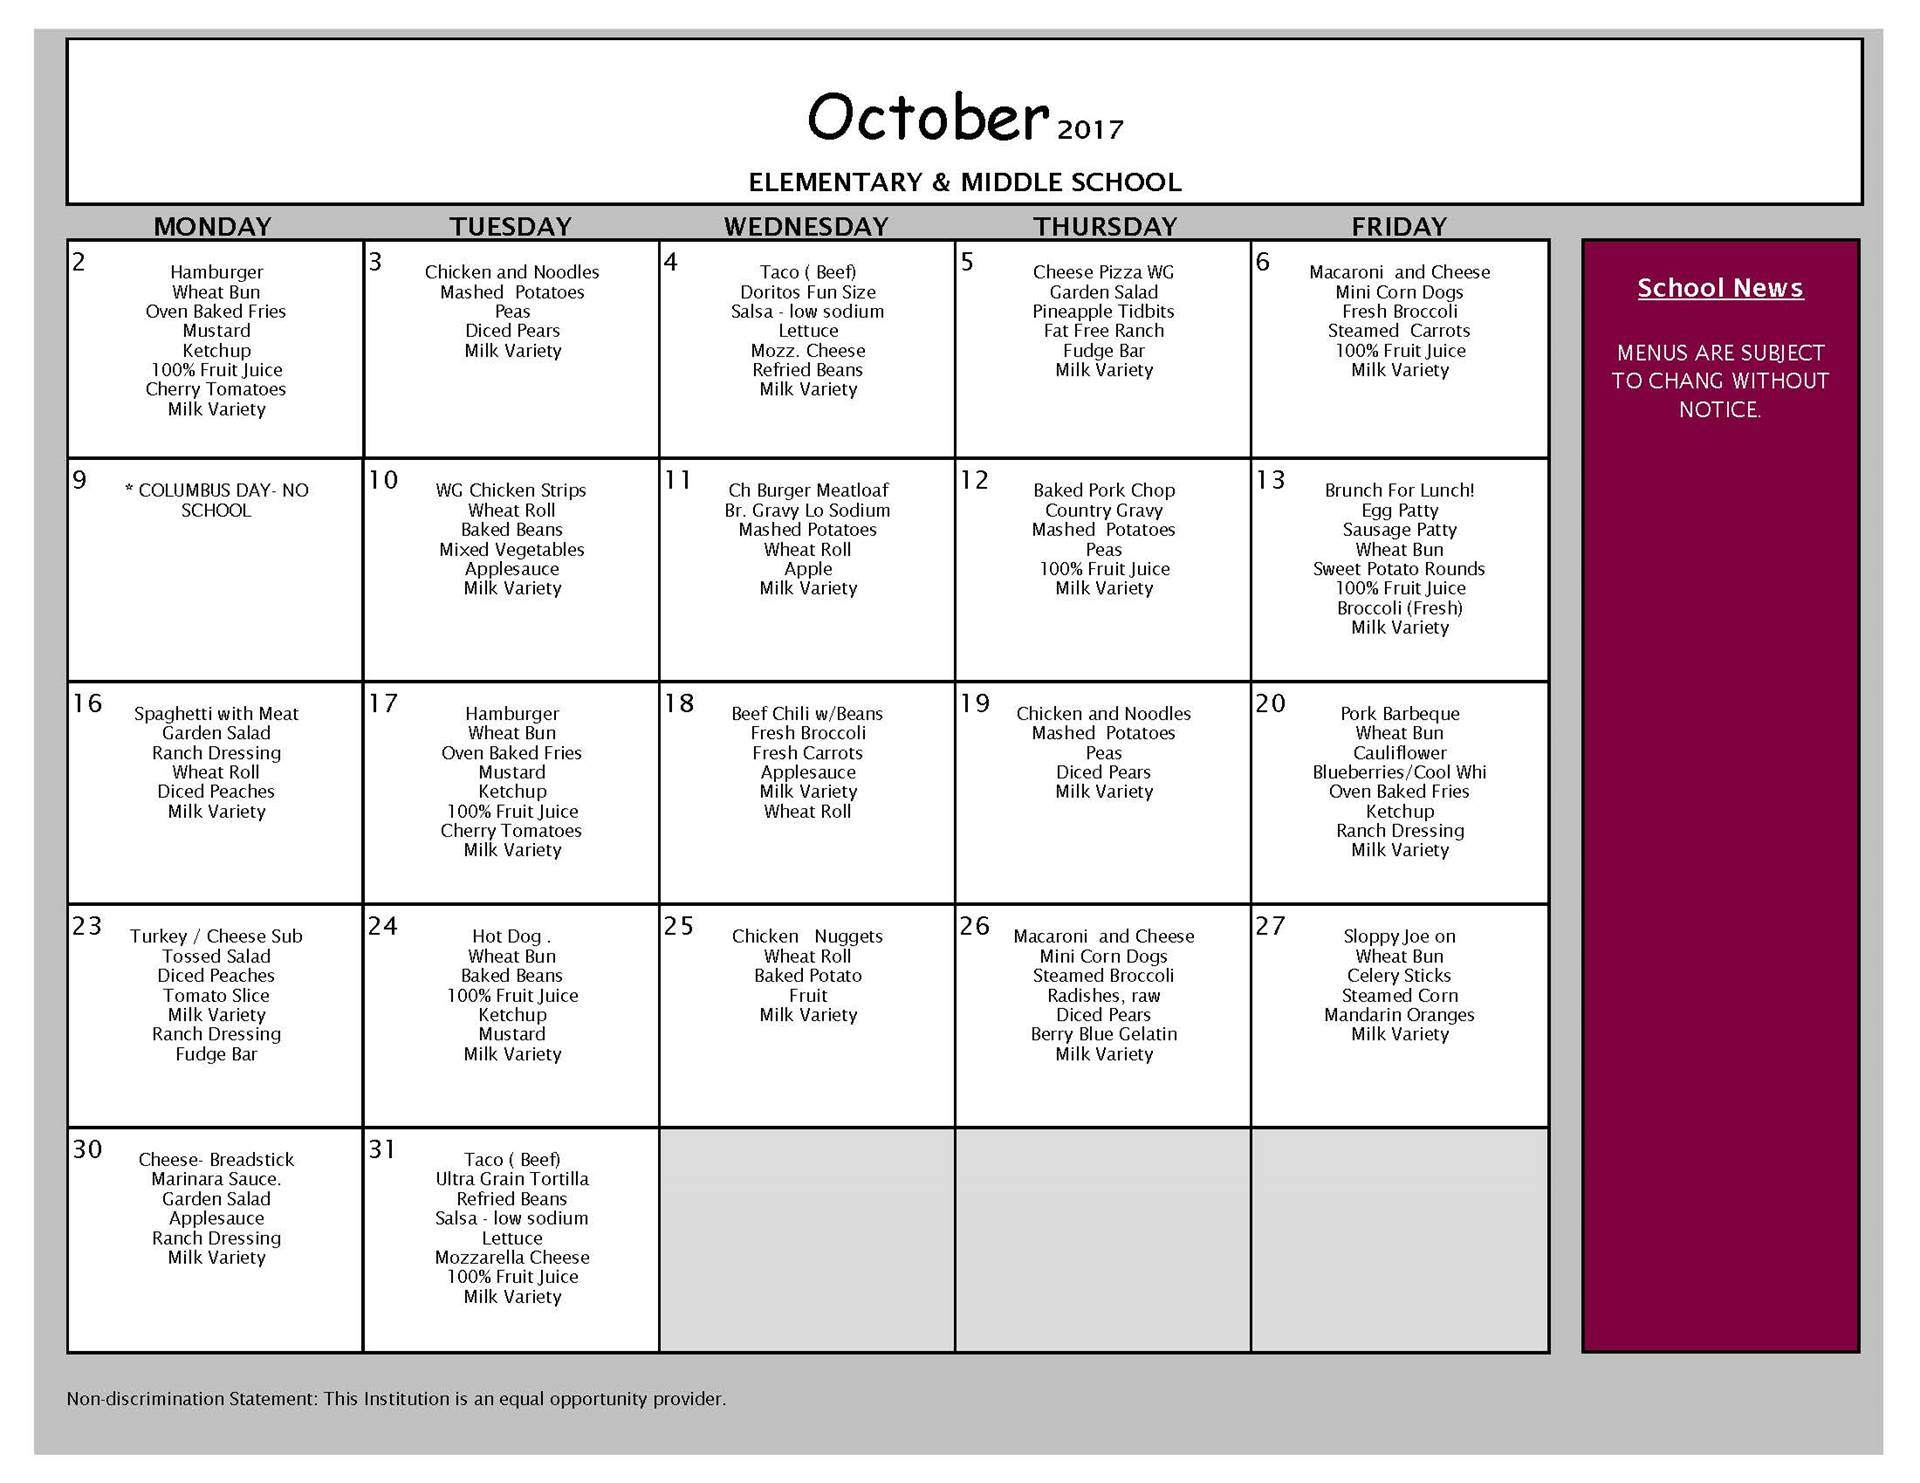 October Lunch Menu - Middle School and Elementary